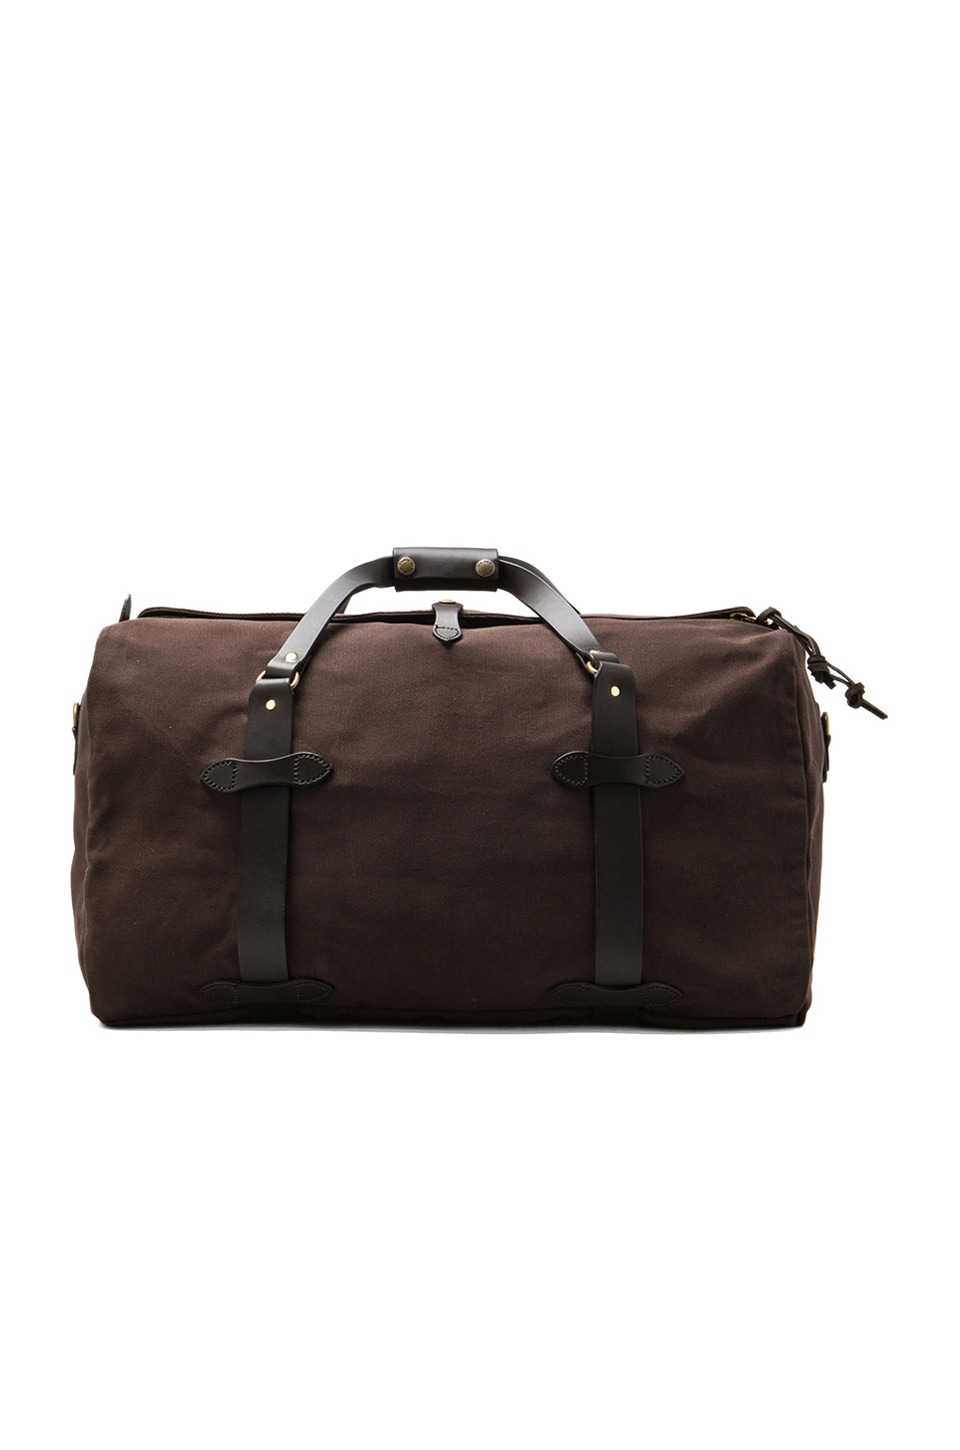 Filson Medium Duffle in Brown